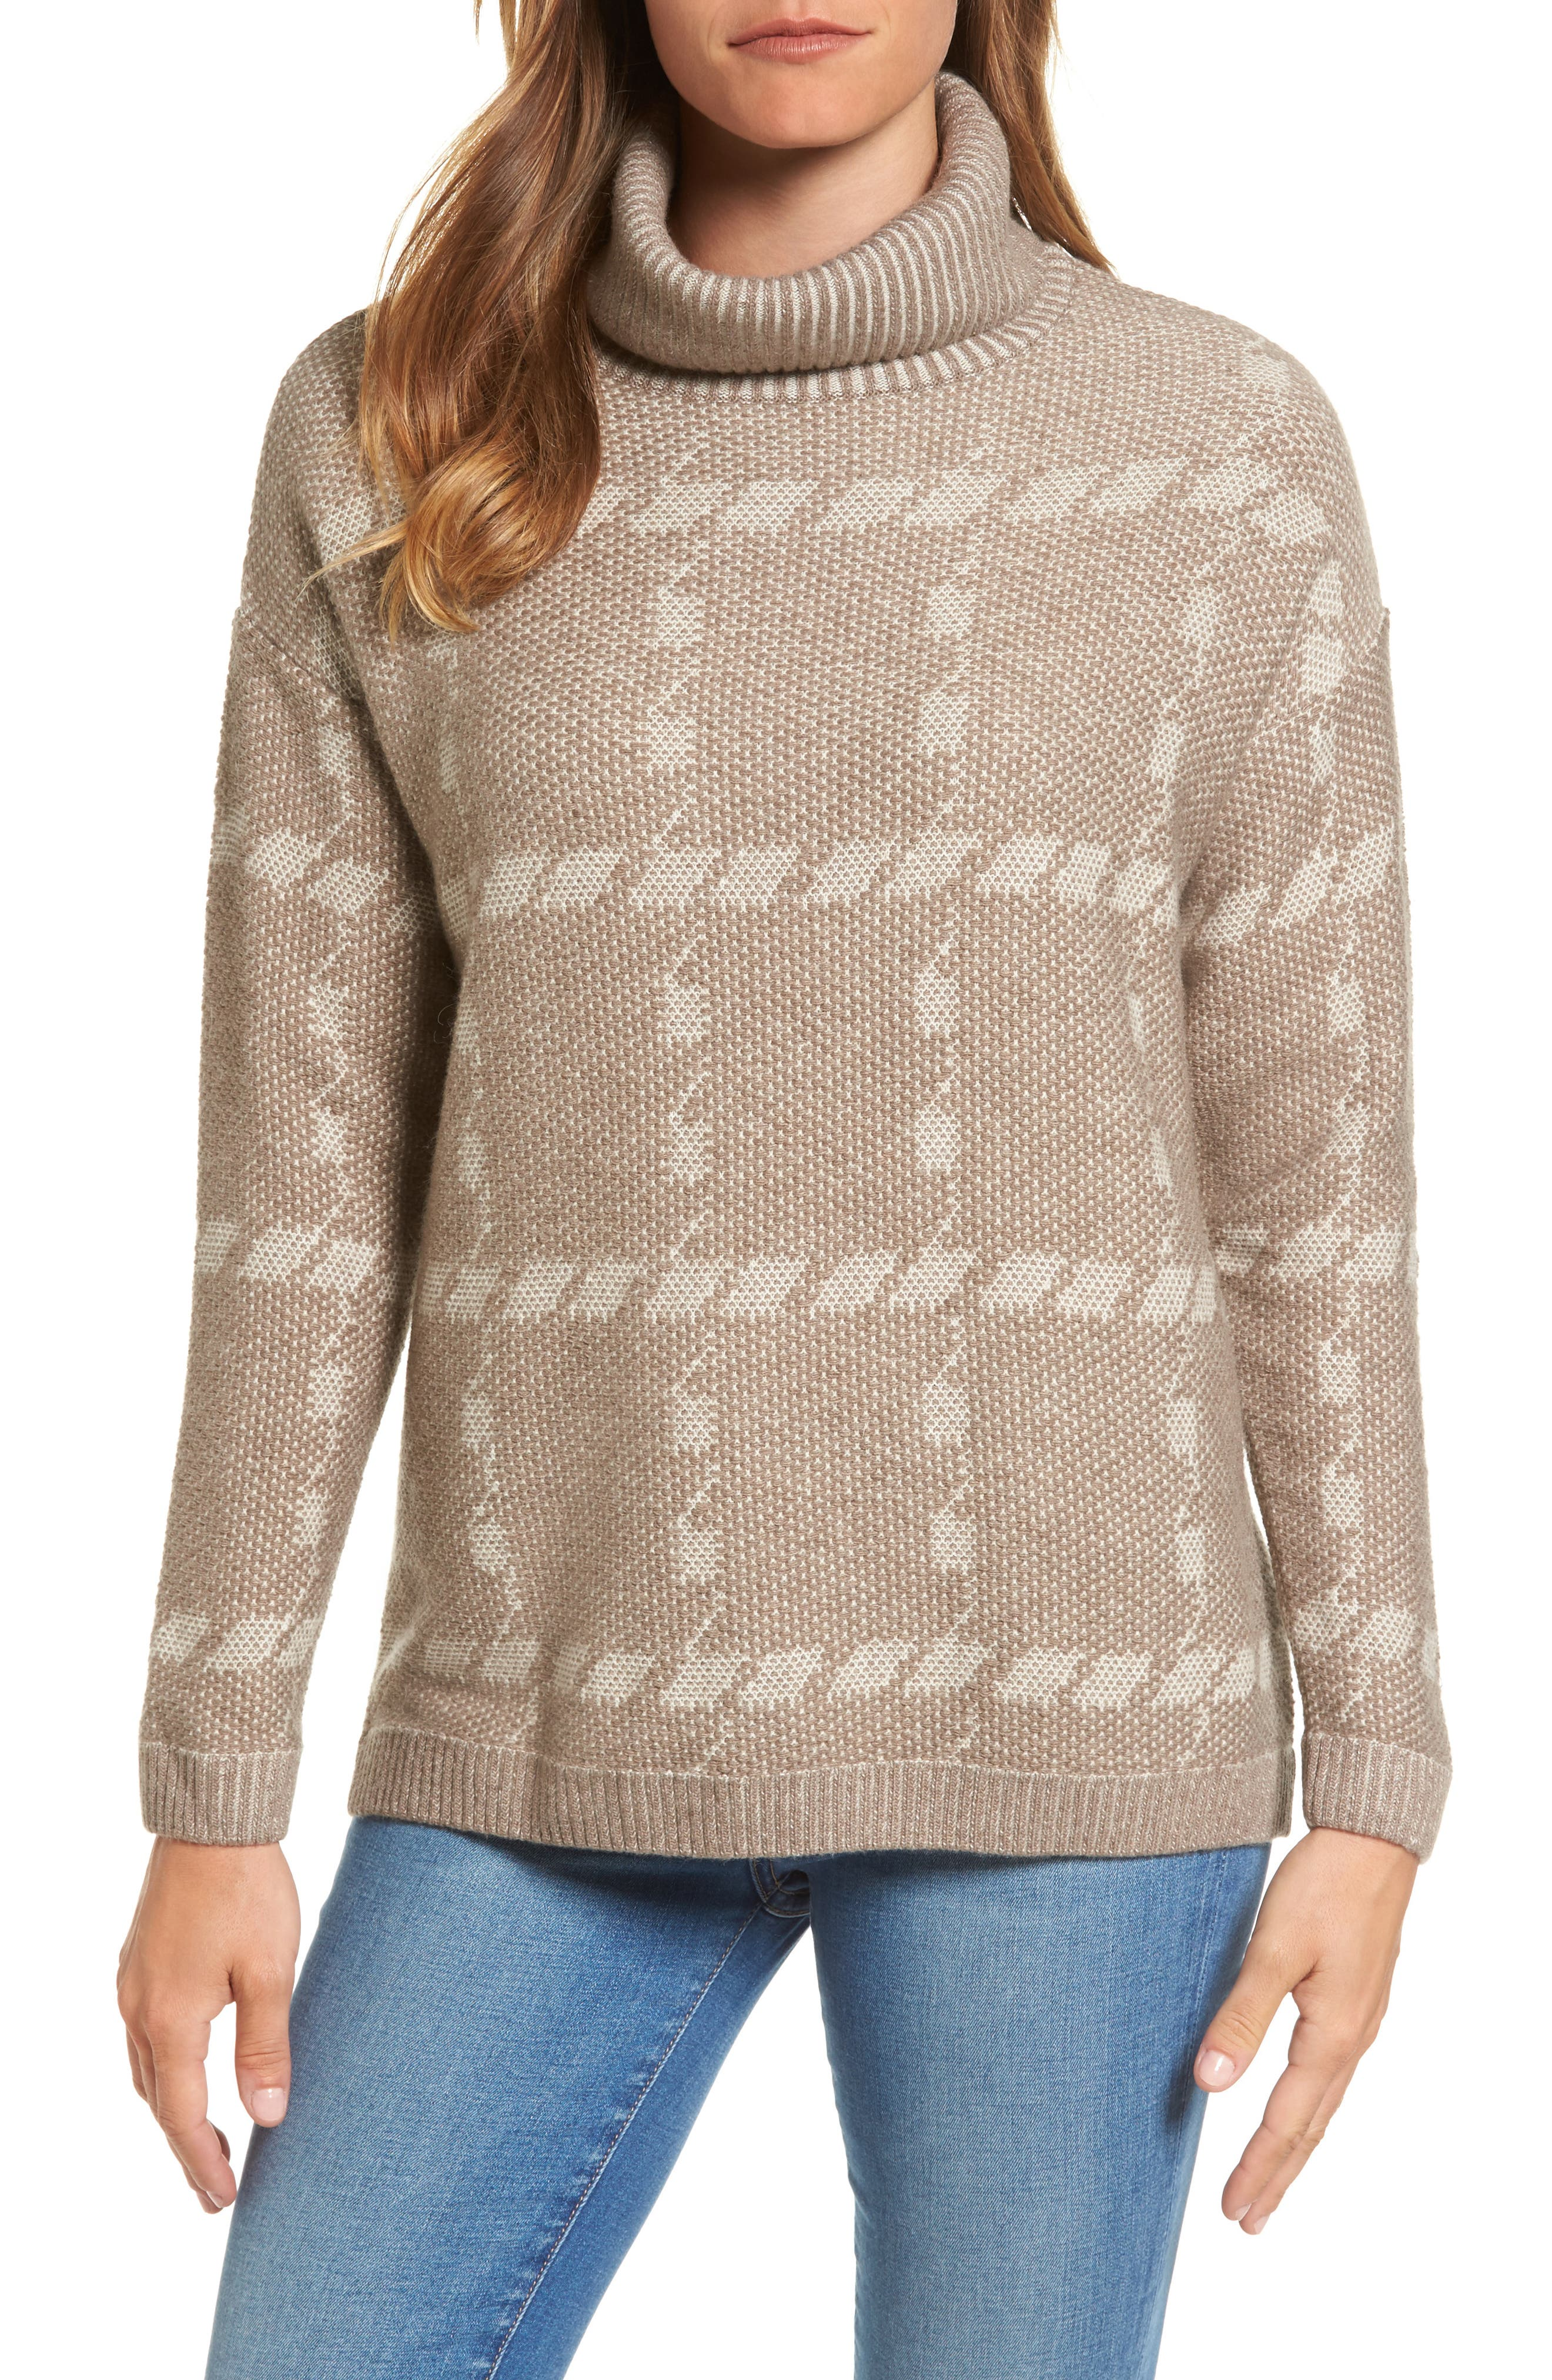 Glen Knit Merino Wool Blend Turtleneck Sweater,                         Main,                         color, Taupe